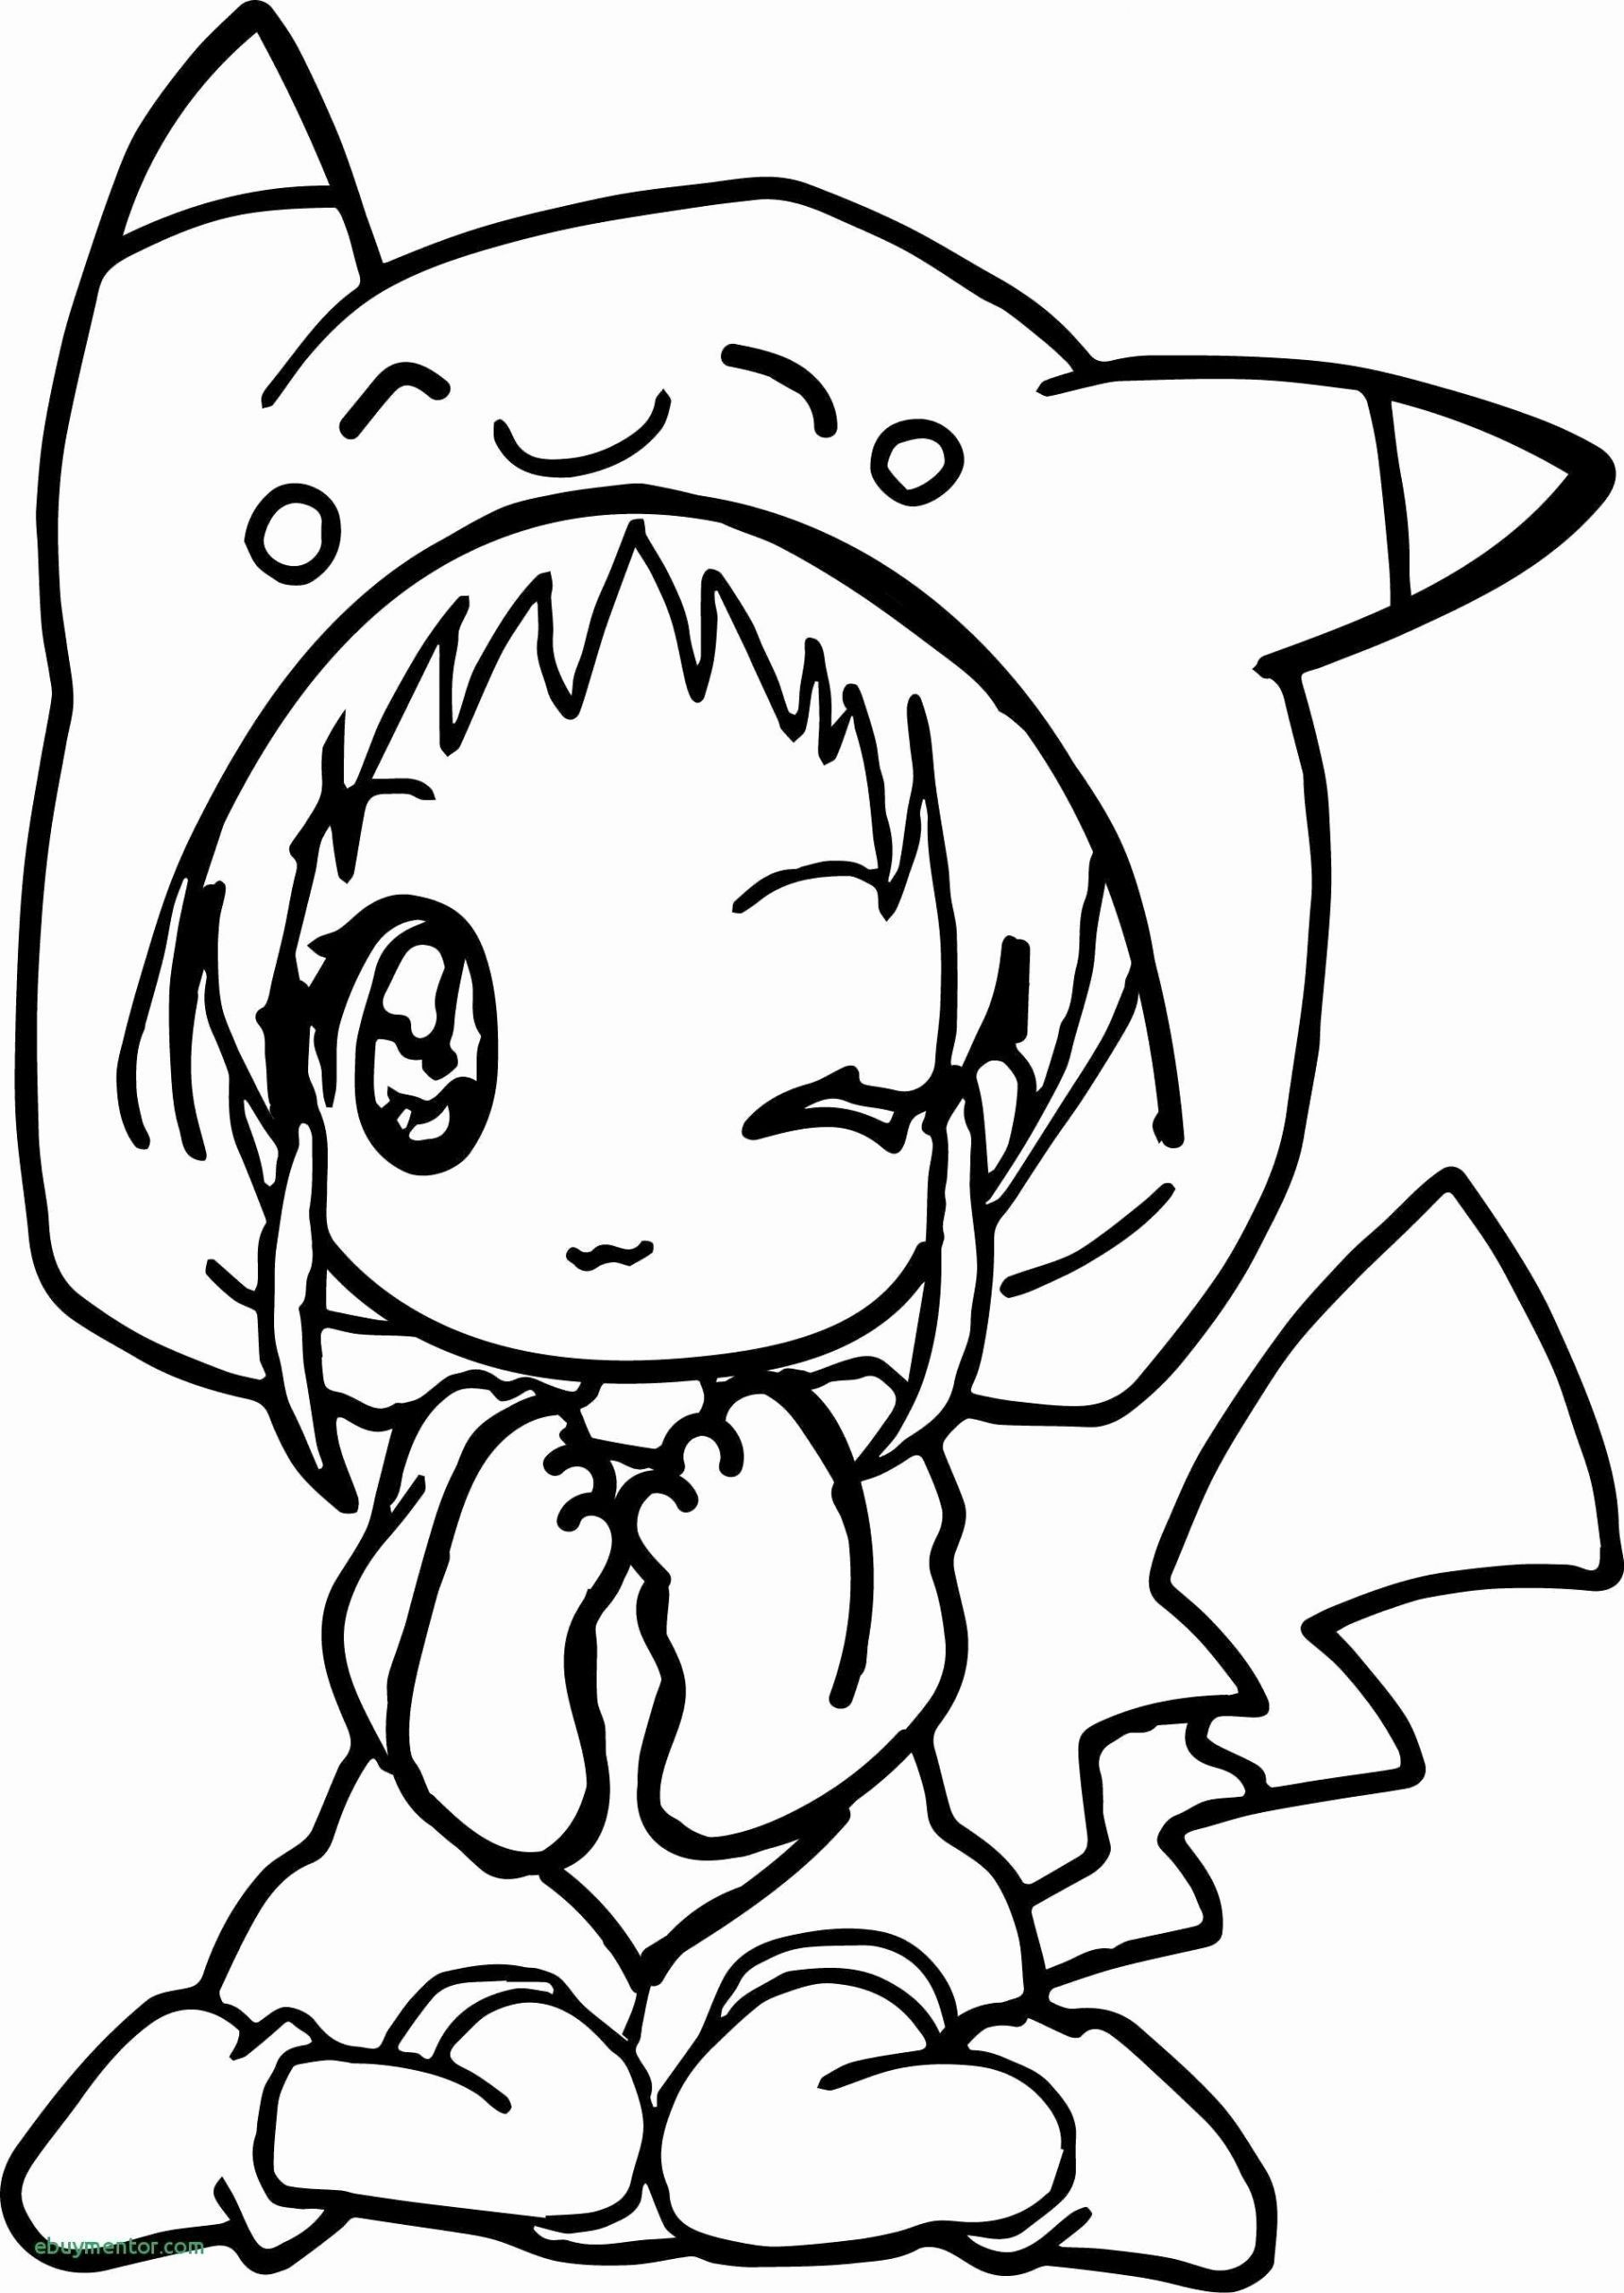 Chibi Animals Coloring Pages Beautiful Chibi Pikachu Coloring Pages Through The Thousands Of In 2020 Unicorn Coloring Pages Pikachu Coloring Page Cute Coloring Pages